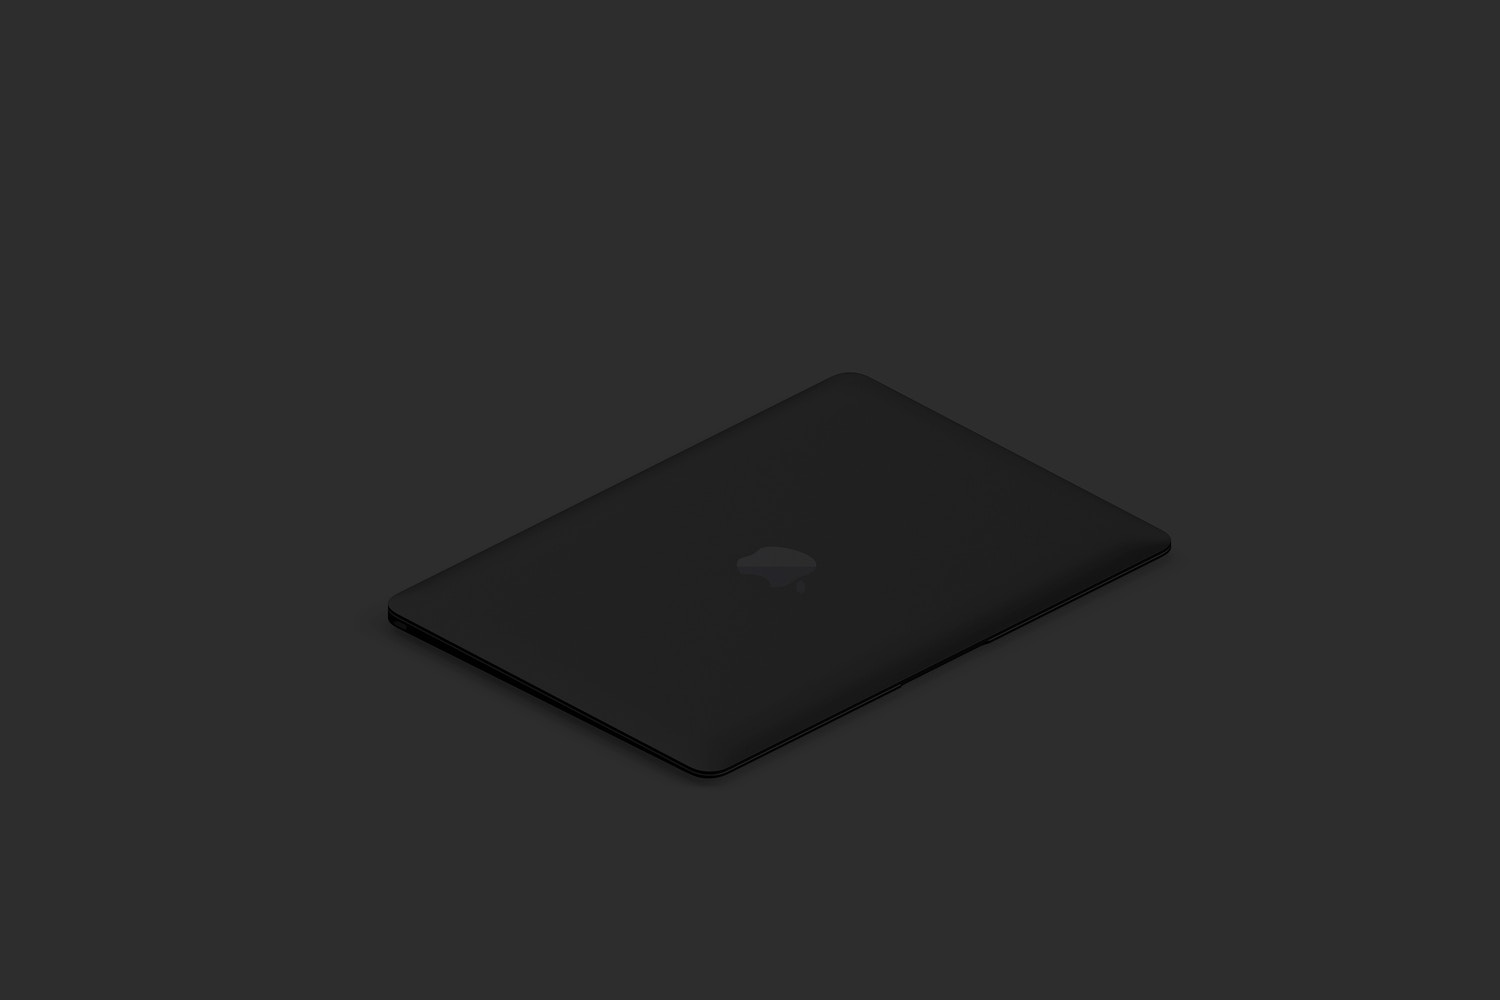 Clay MacBook Mockup, Isometric Right View 02 (5) by Original Mockups on Original Mockups